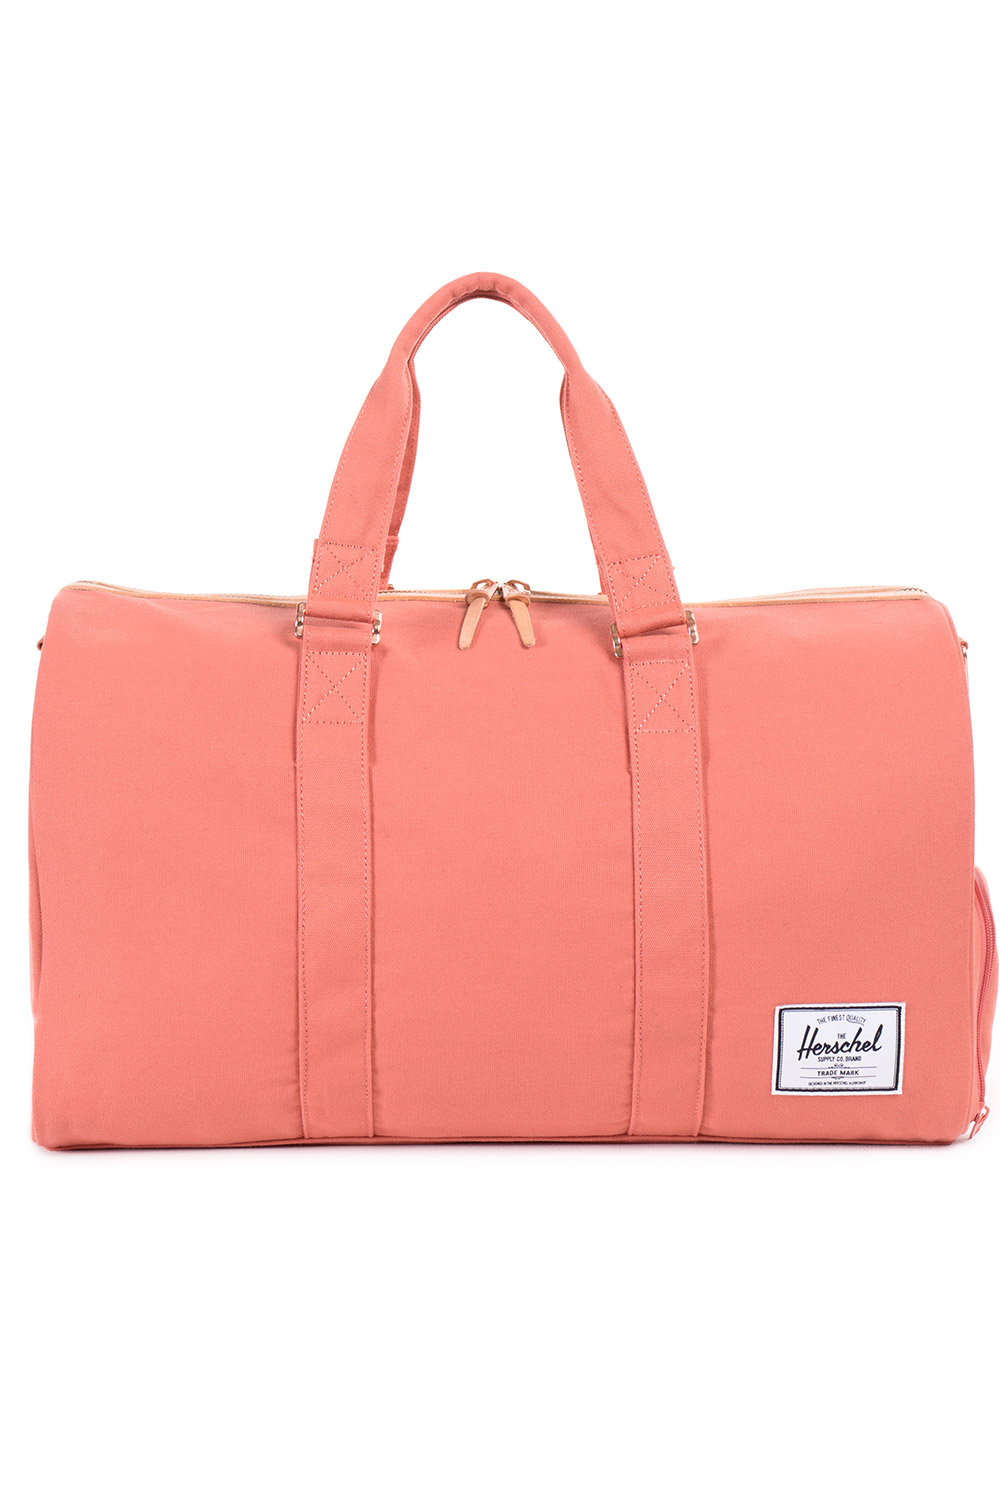 Herschel Novel Select Duffle Bag Pink